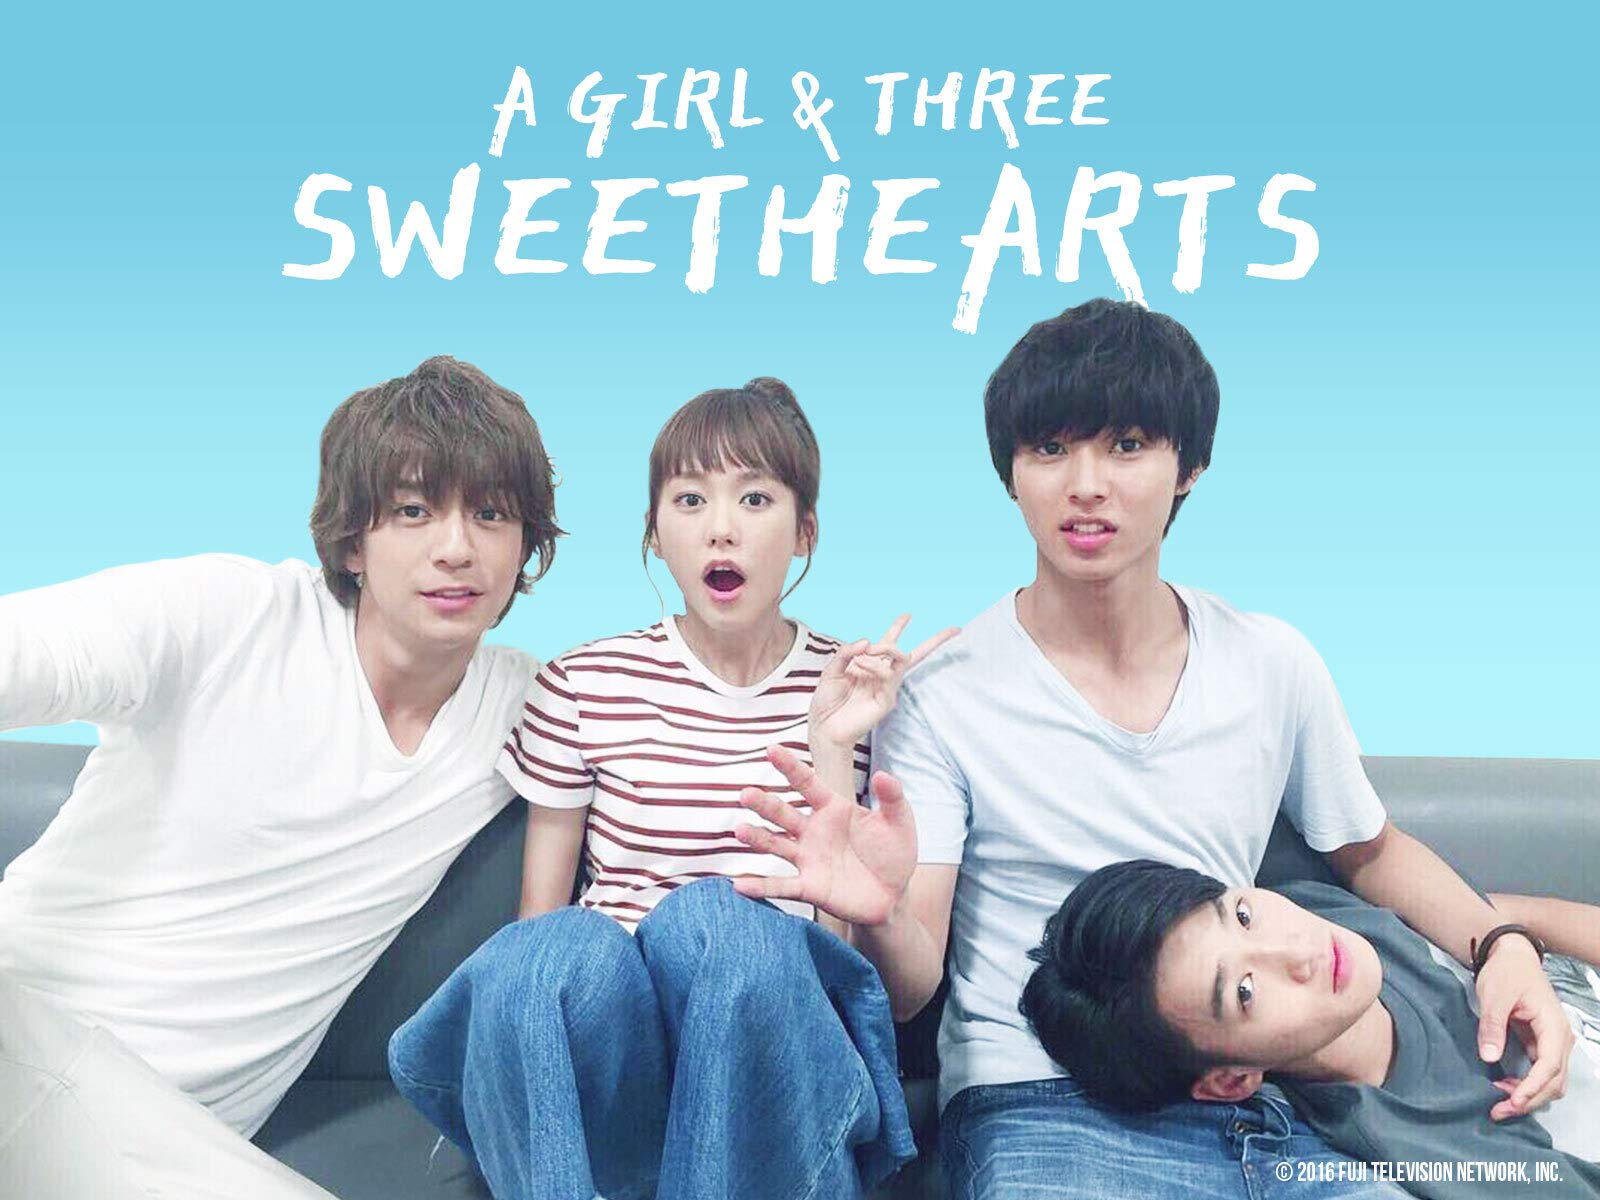 A Girl And Three Sweethearts